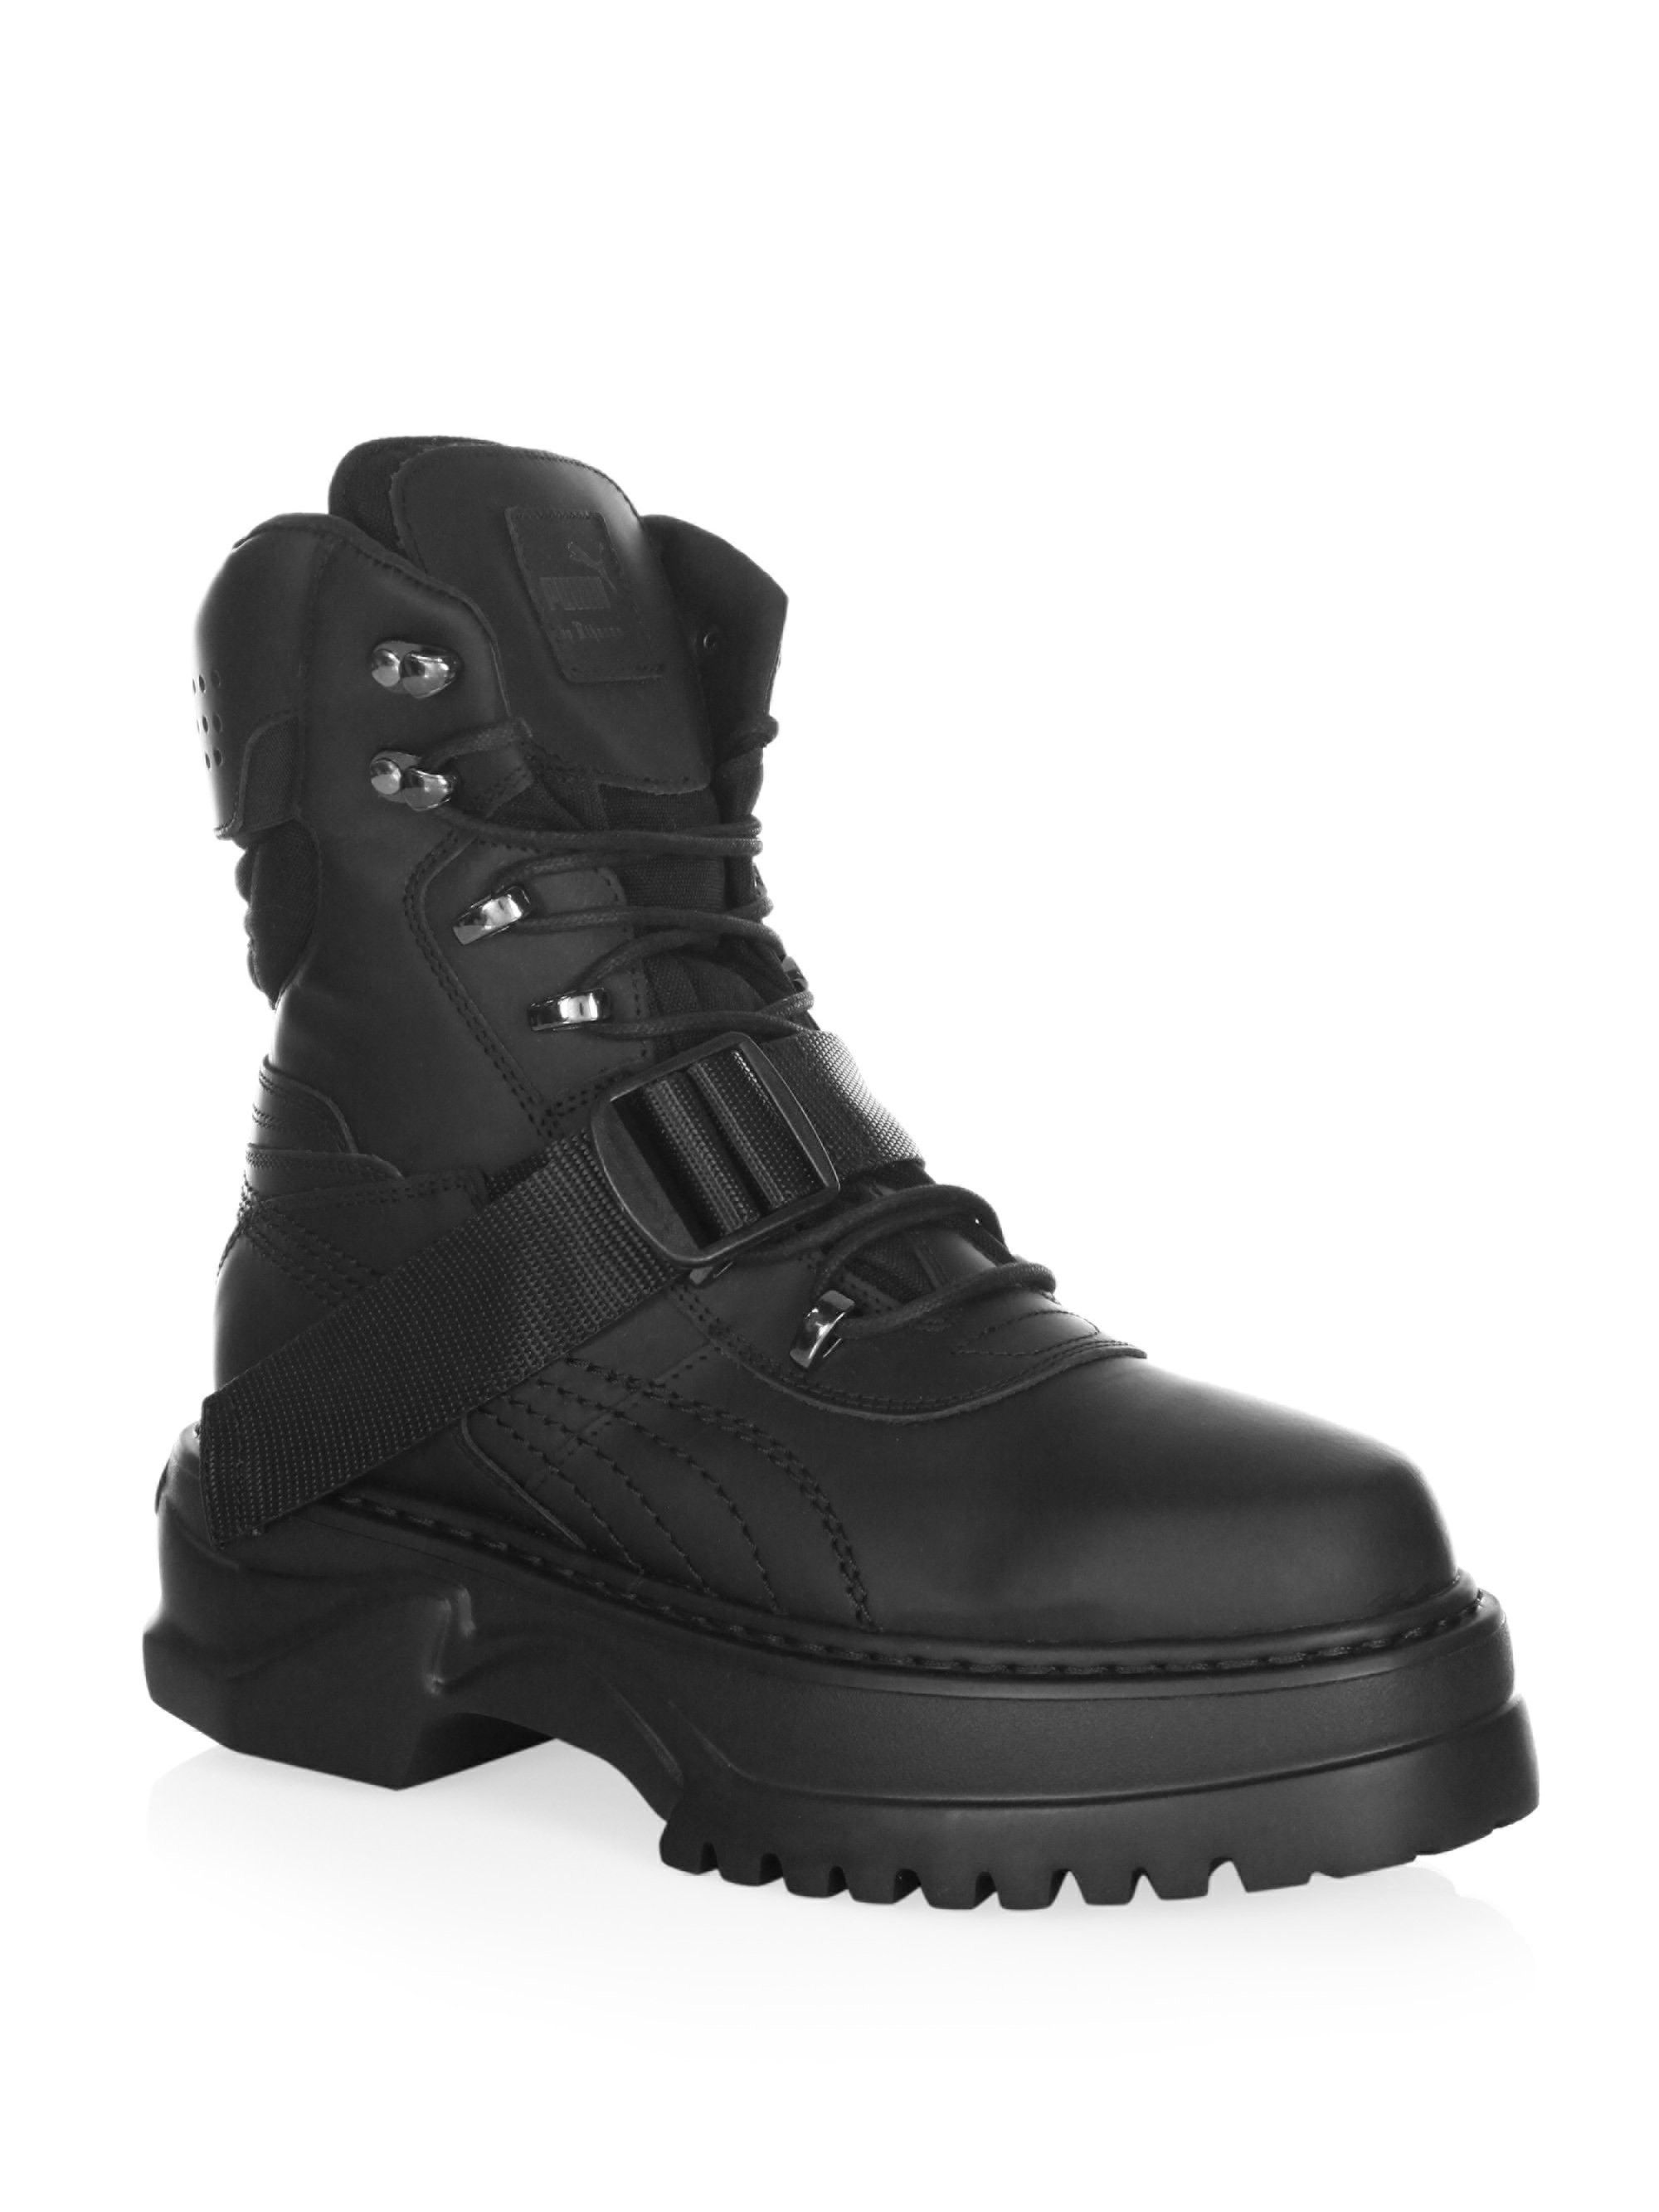 Puma Lace-Up Leather Winter Boots - Black 7.5 517a073c8